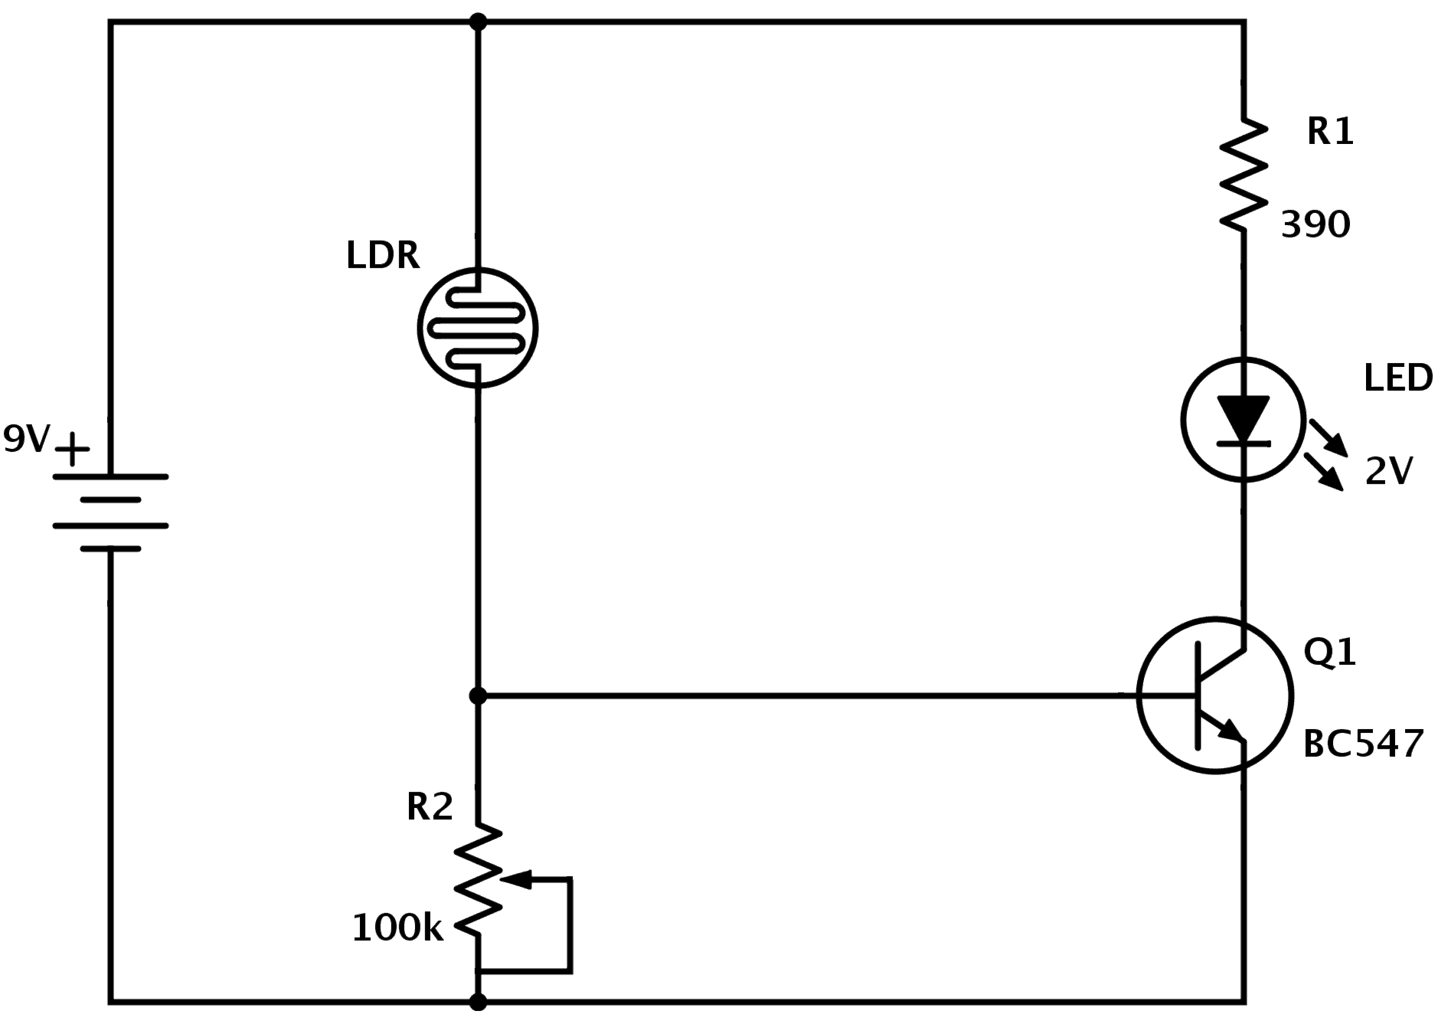 LDR circuit improved circuit diagram how to read and understand any schematic simple circuit diagram at gsmx.co